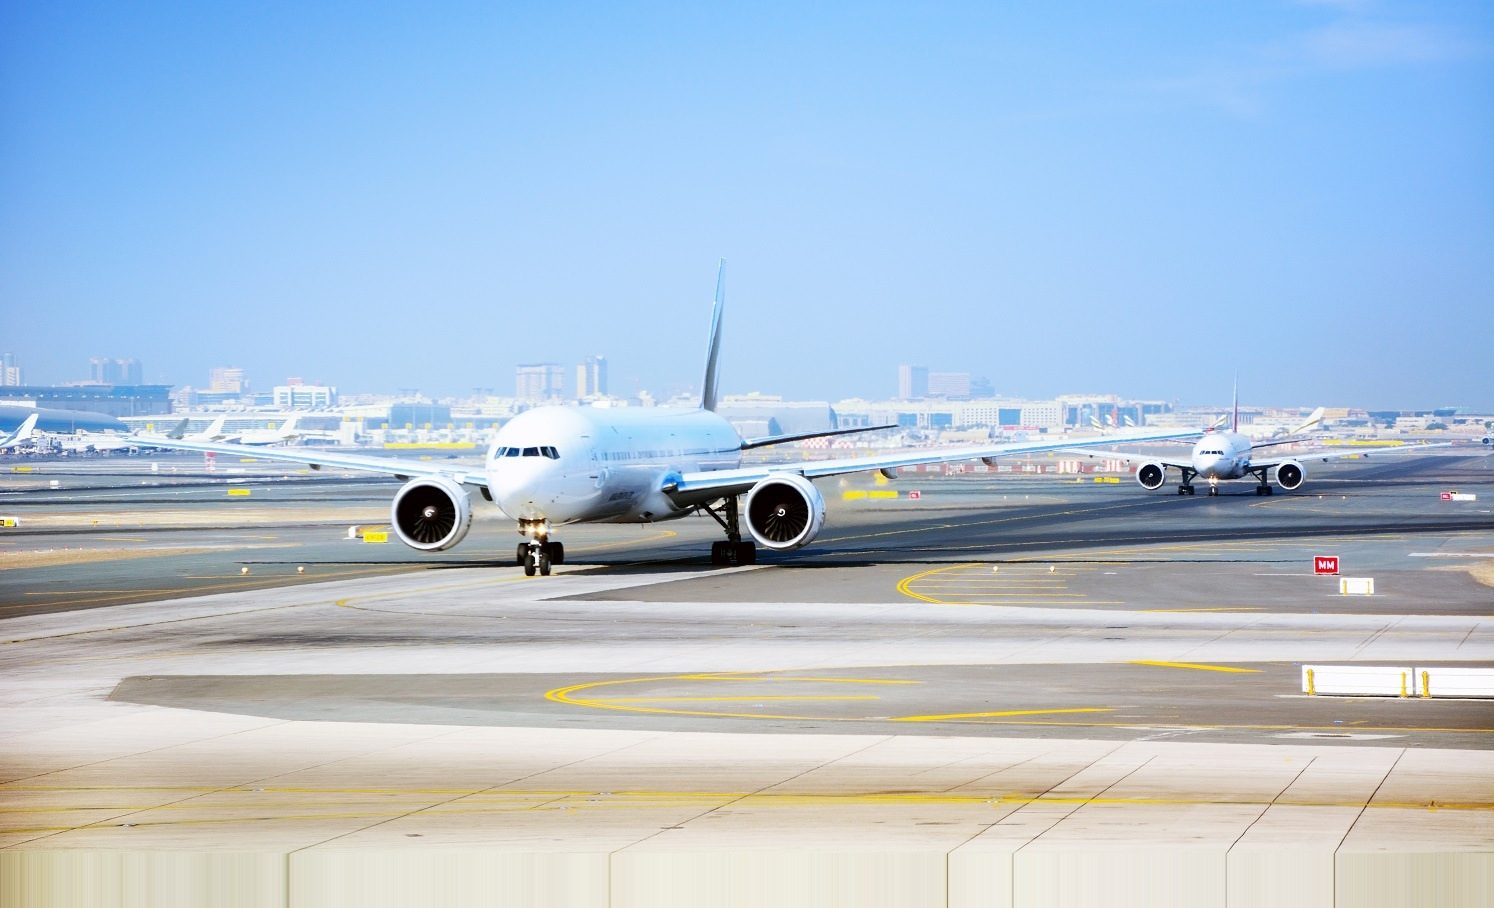 Airplanes-ready-for-take-off-502580892_6000x6000.jpeg